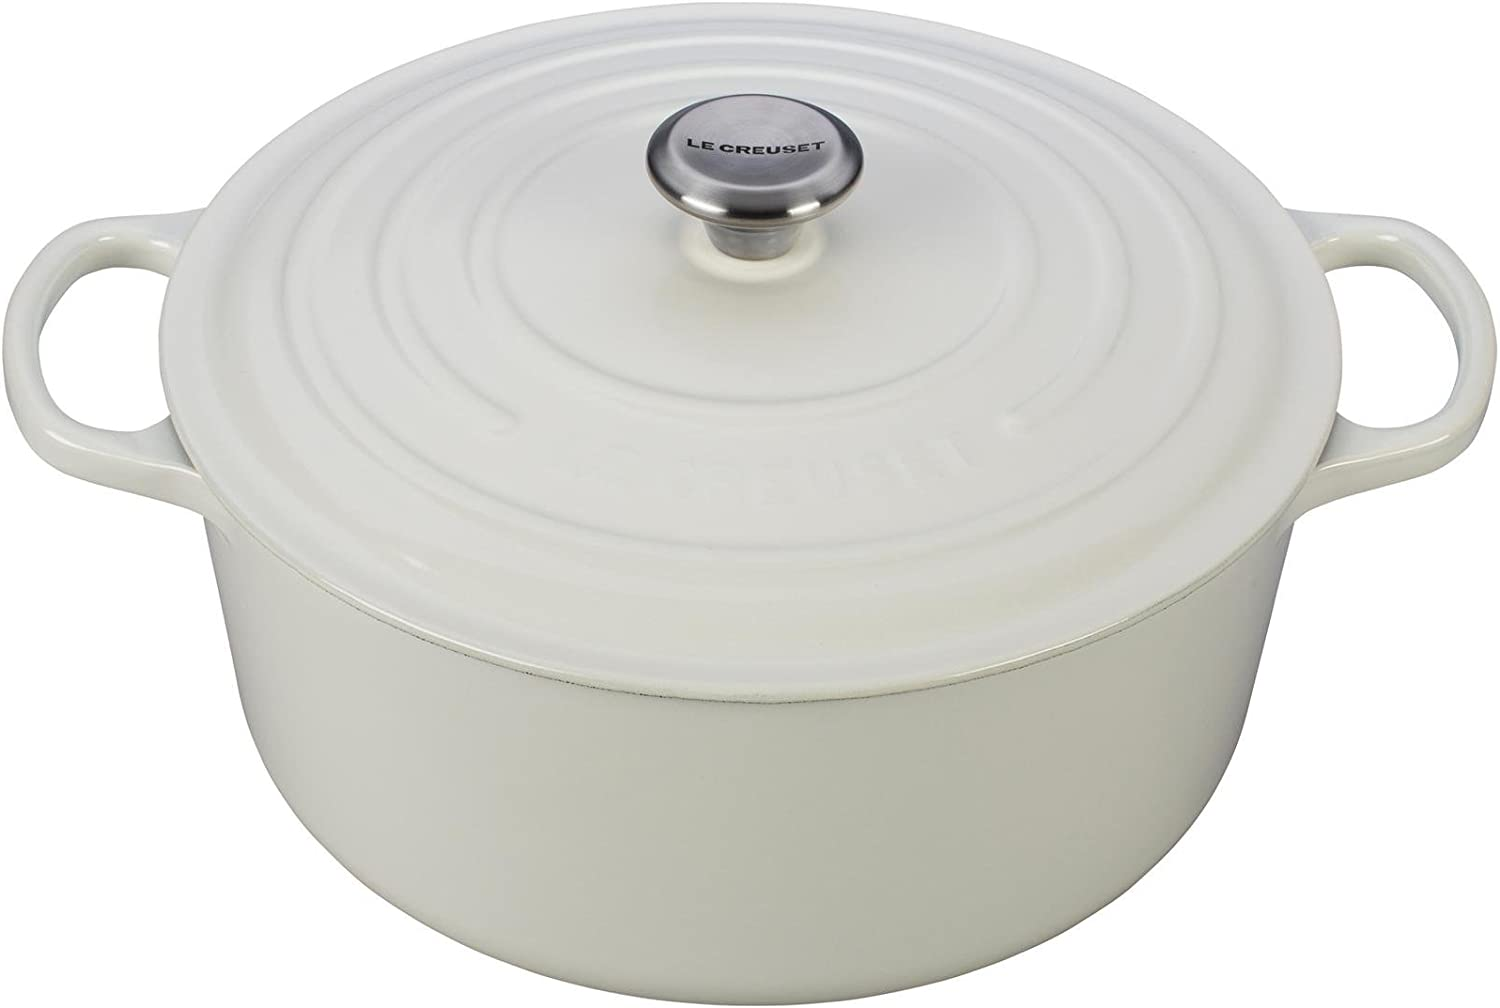 Le Creuset Enameled Cast Iron Signature Round Dutch Oven, 9 qt., White